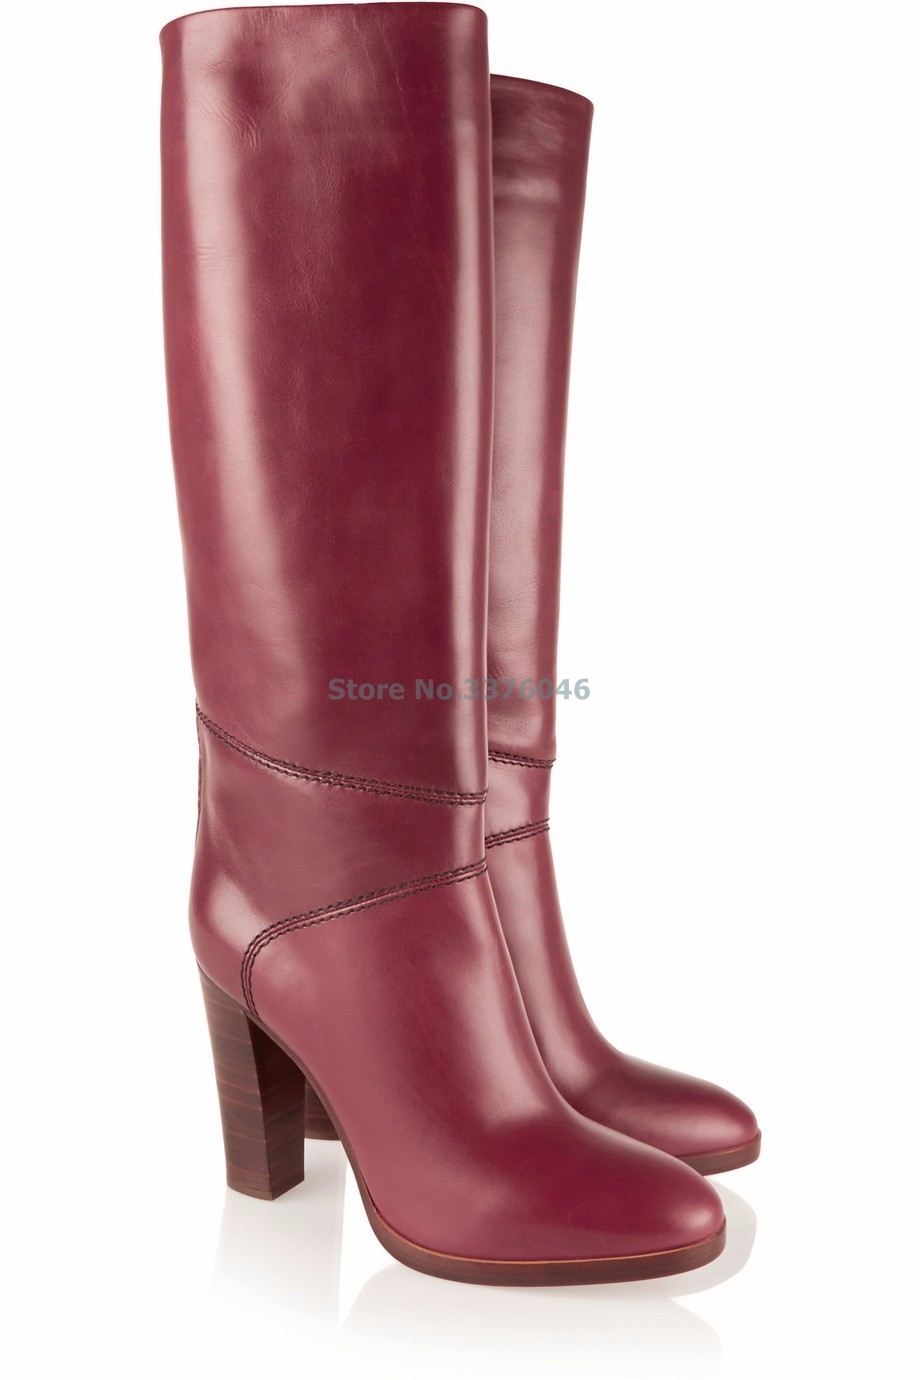 Wine Red PU Leather Thick Heel Knee High Long Boots Round Toe High Heel Concise Elegant Over The Knee Boots Women Riding Boots basic 2018 women thick heel ankle boots black pu fleeces round toe work shoe red heel winter spring lady super high heel boots